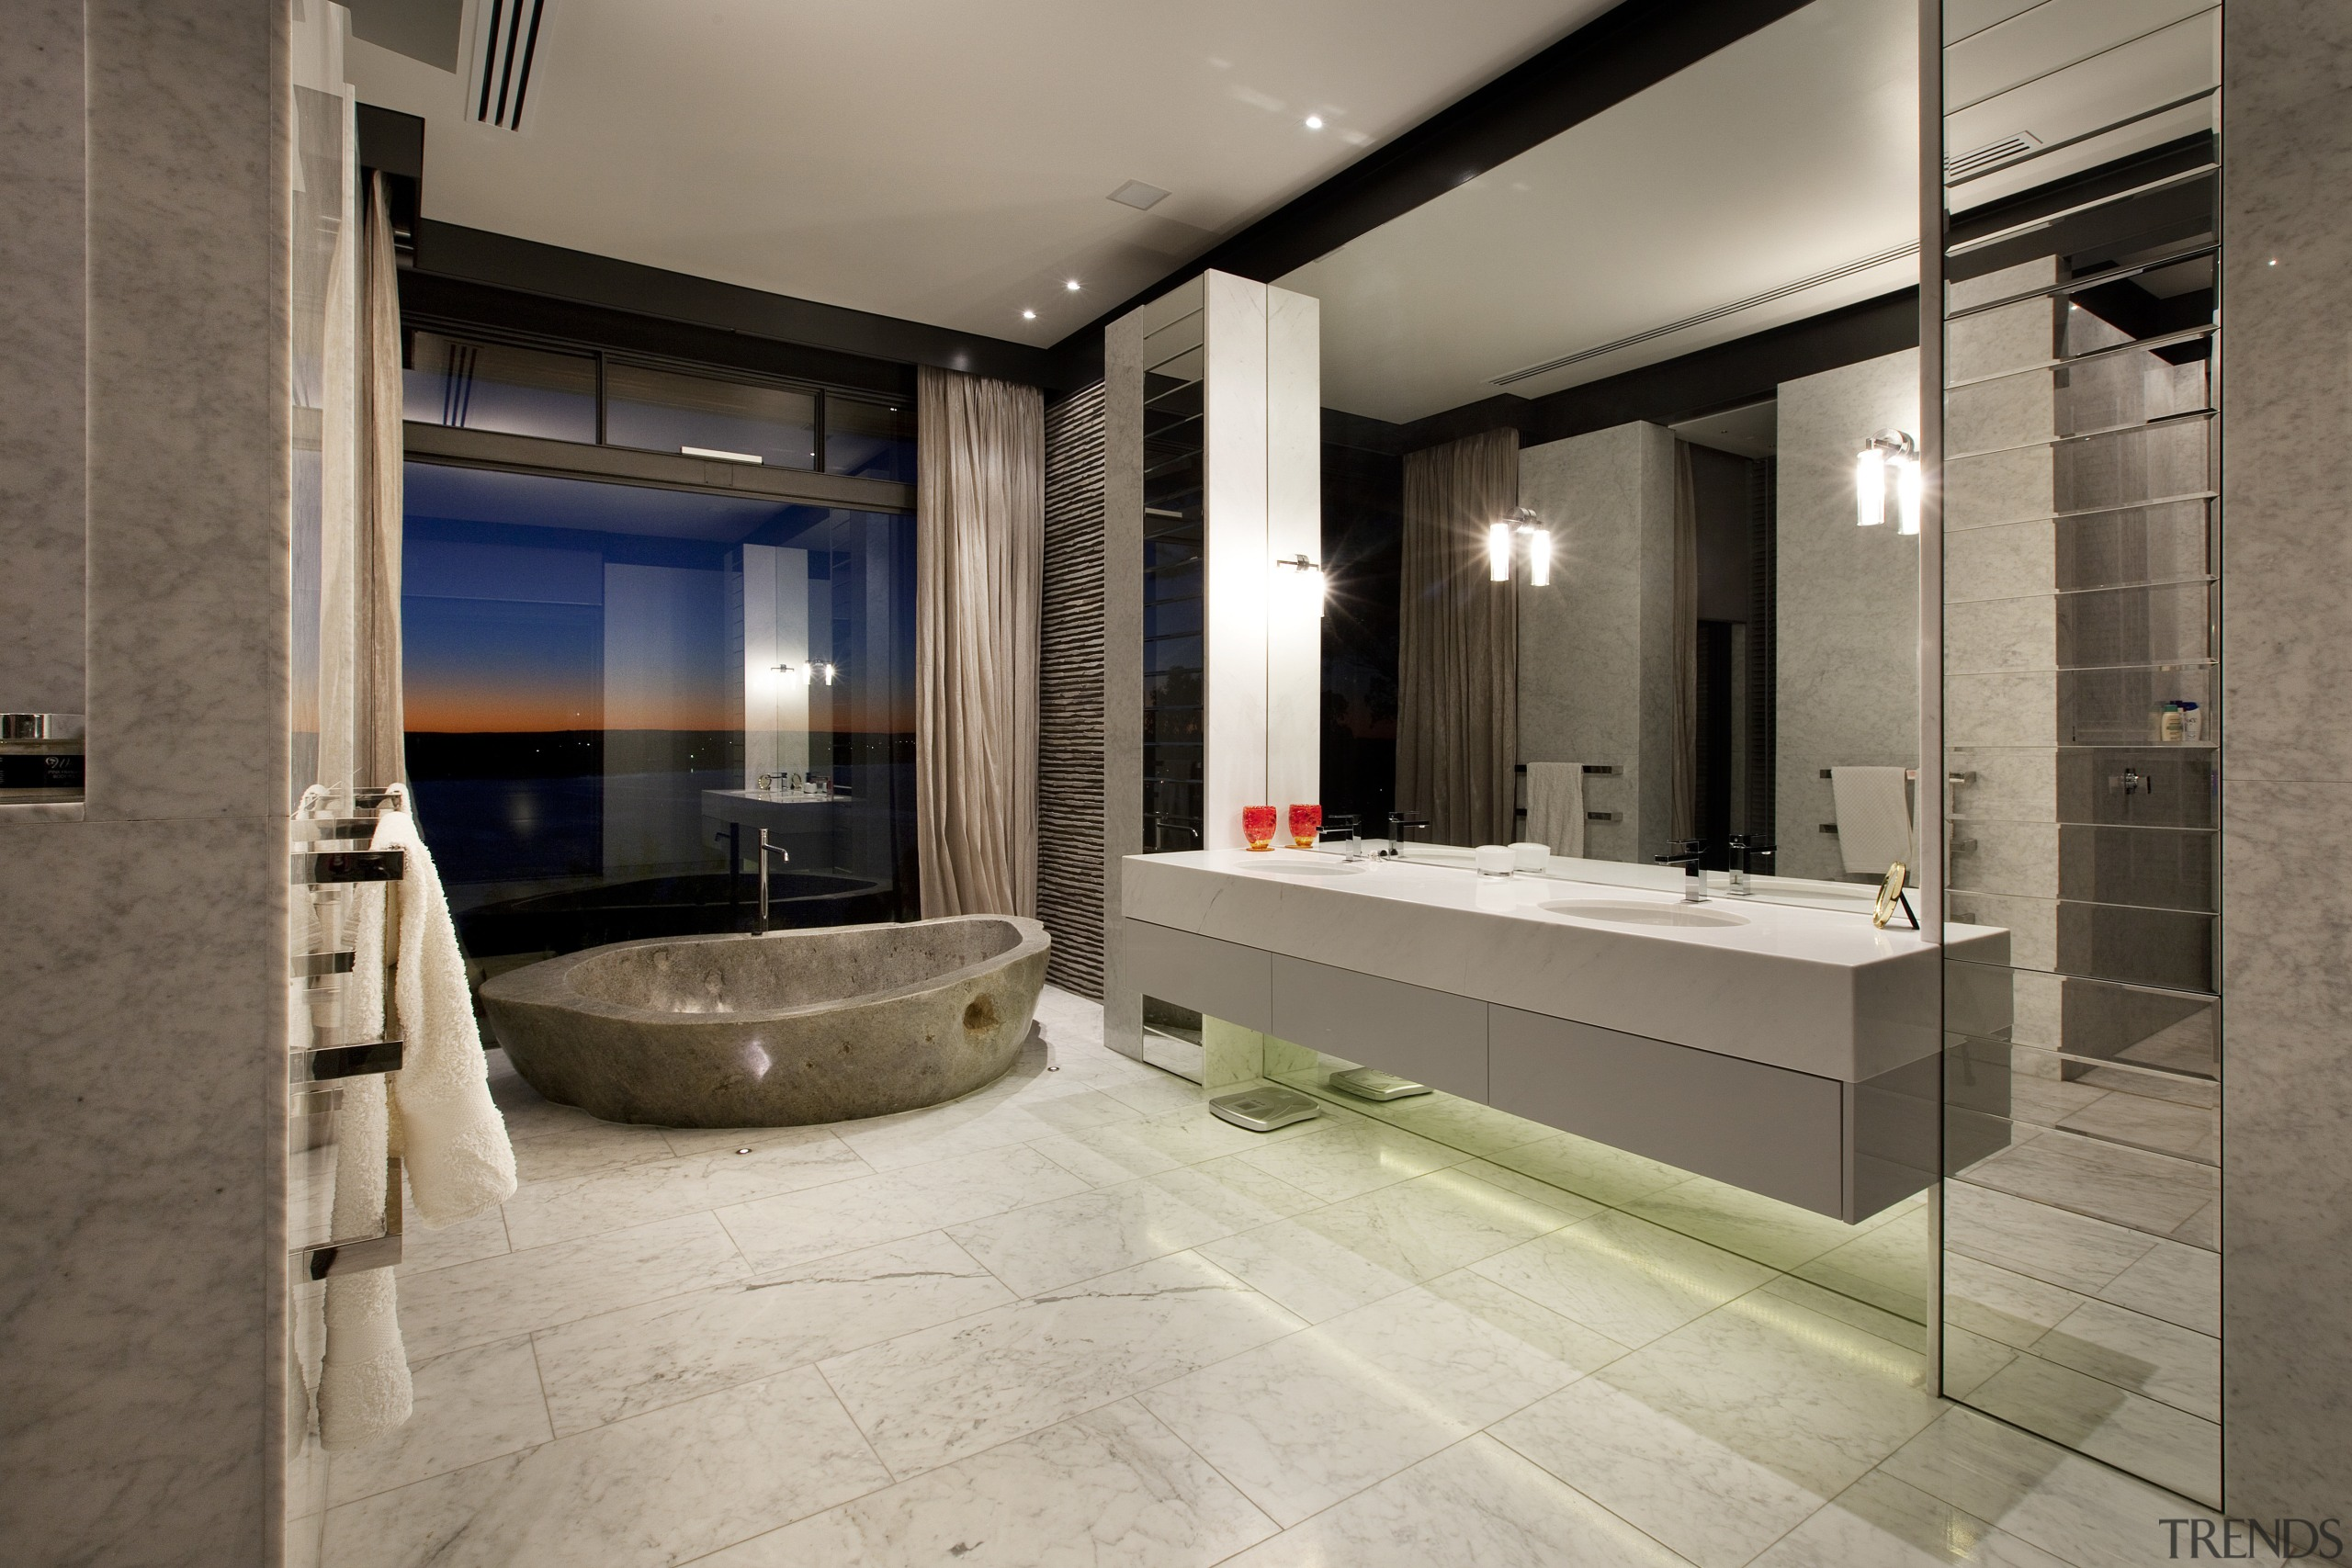 This house was designed by architect Martin Grounds bathroom, floor, flooring, interior design, lobby, room, tile, gray, brown